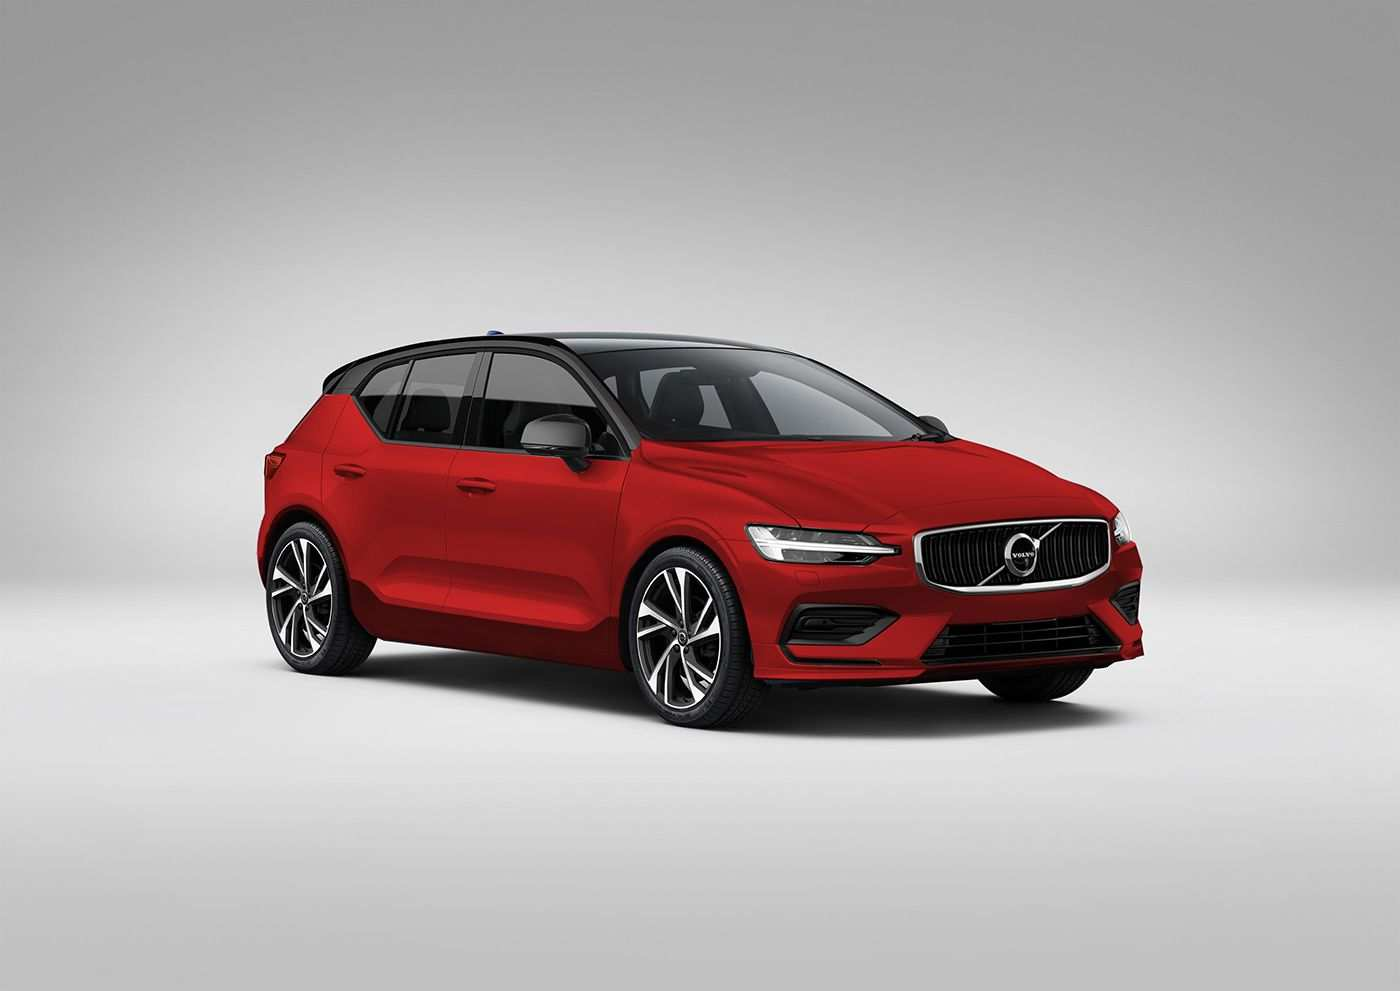 91 Gallery of Volvo Hatchback 2020 Concept for Volvo Hatchback 2020